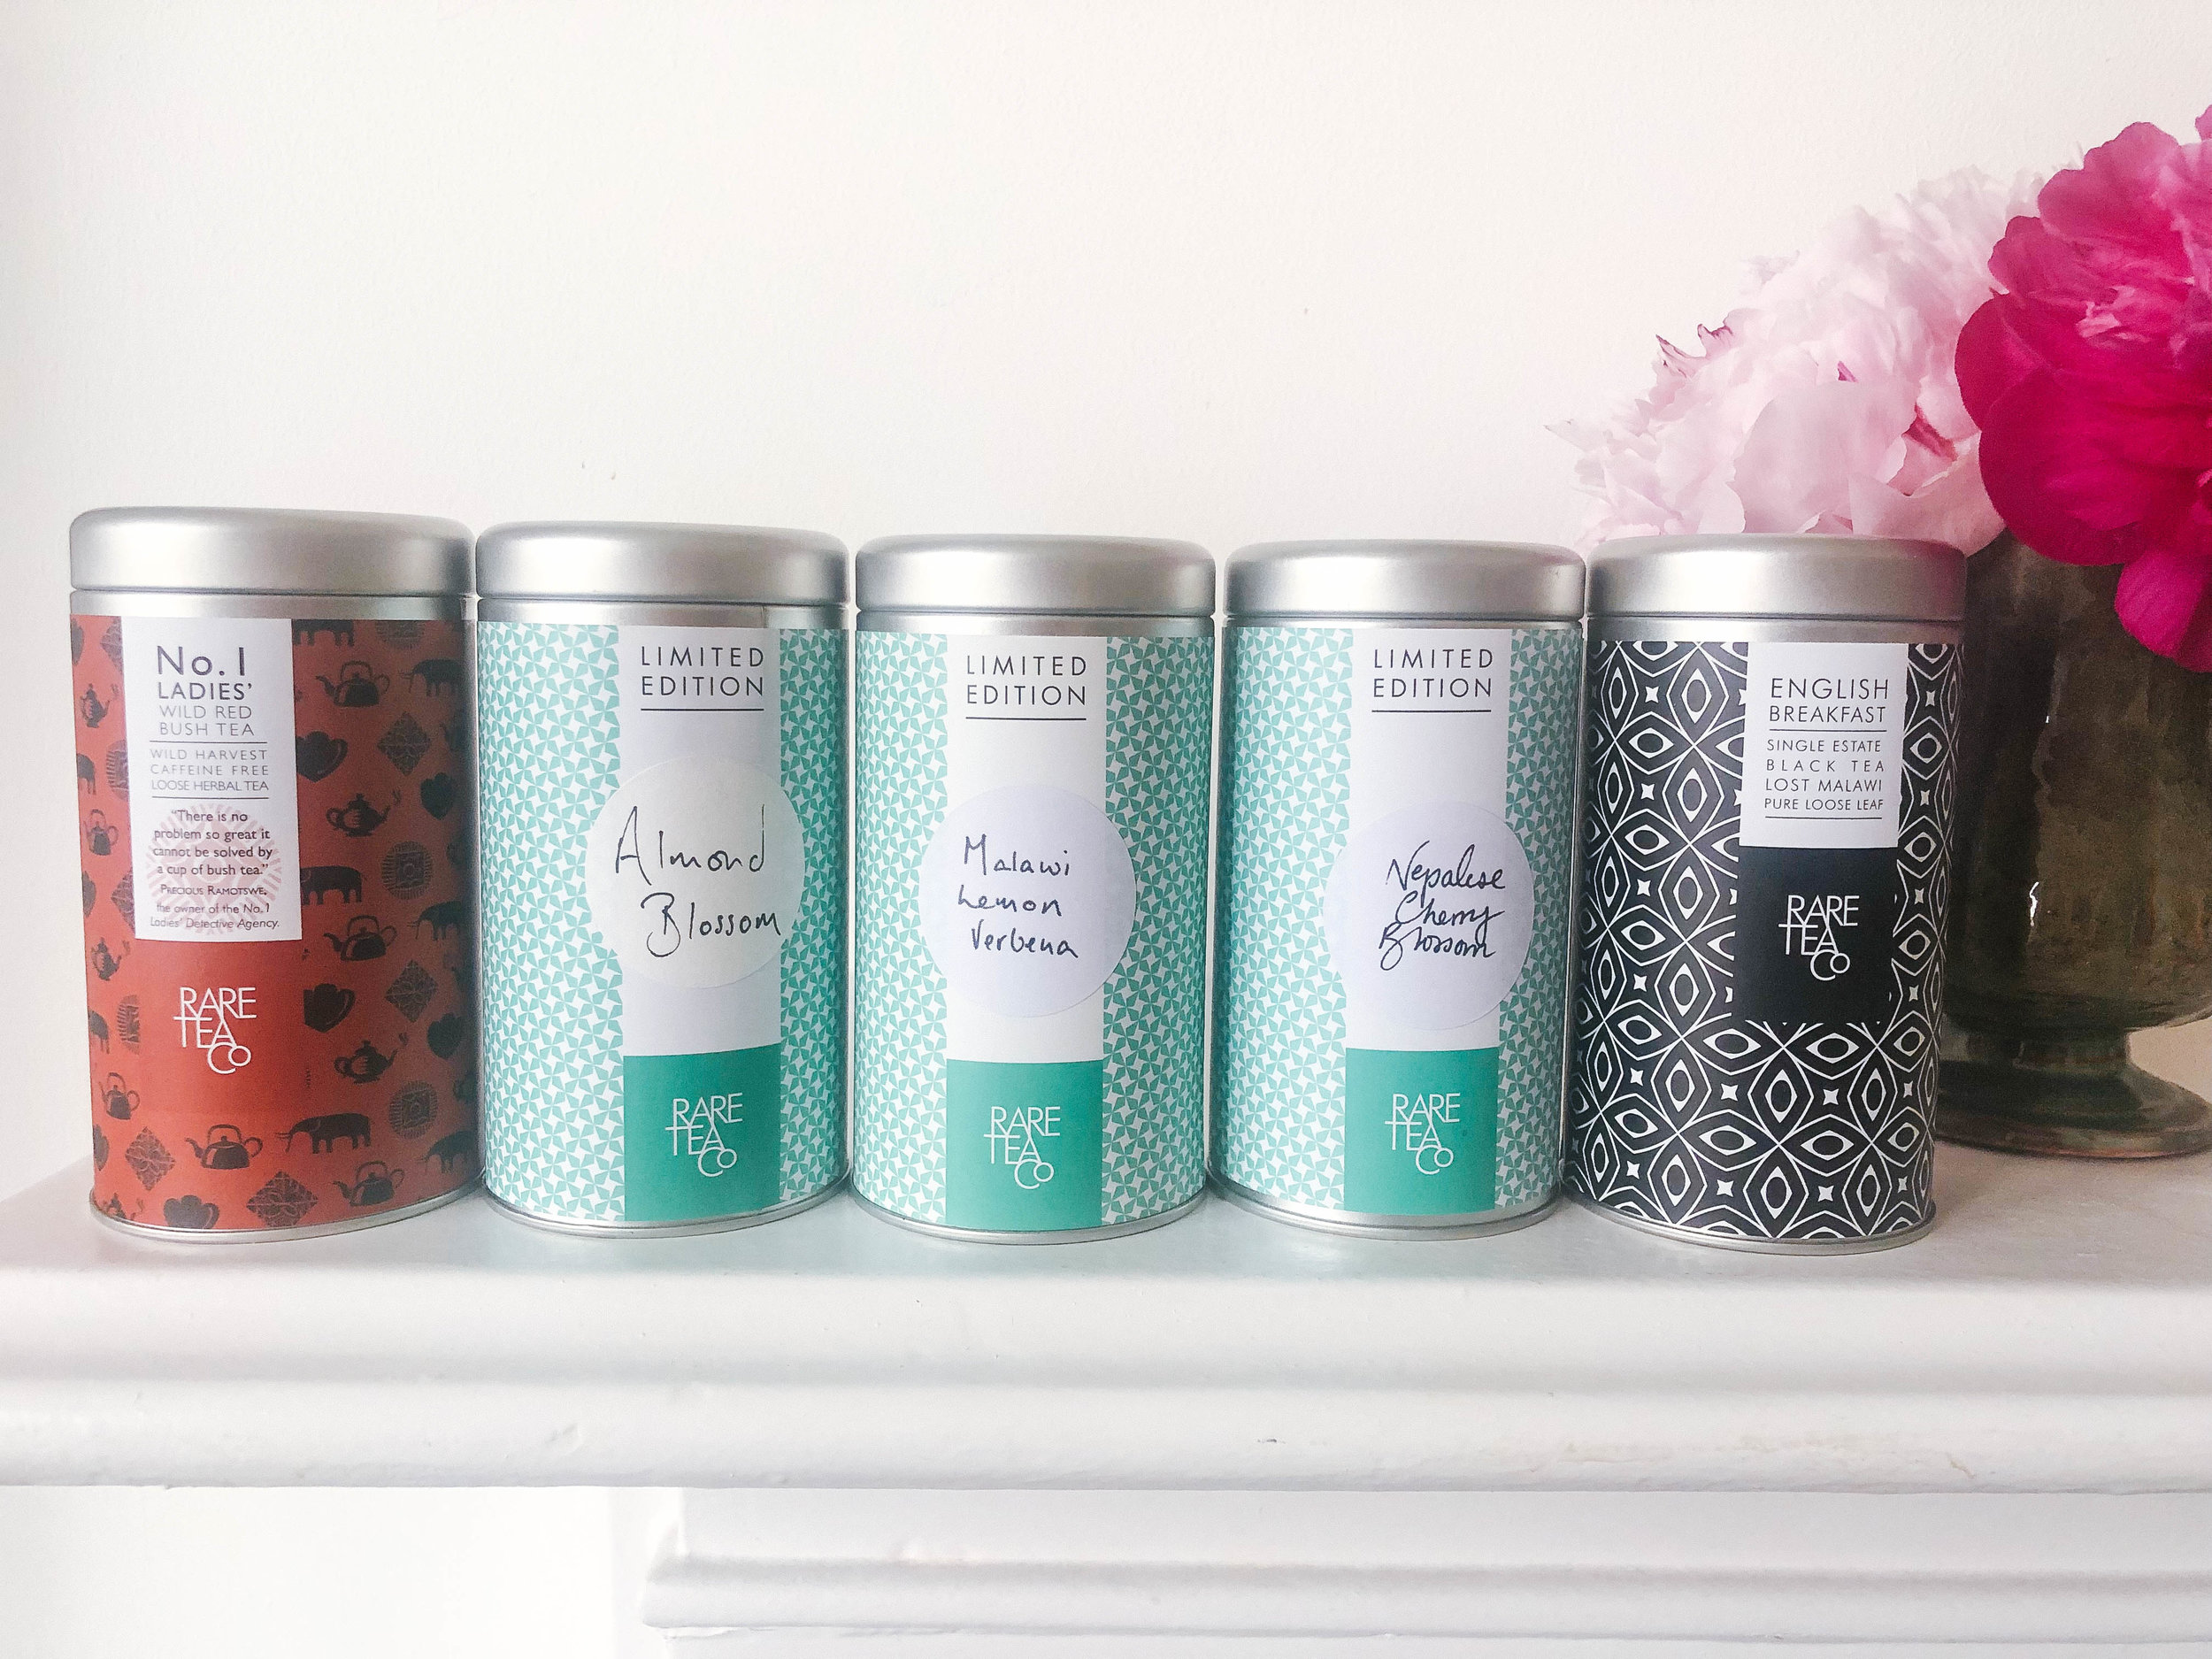 My collection of teas from the Rare Tea Company. All of them are incredible!